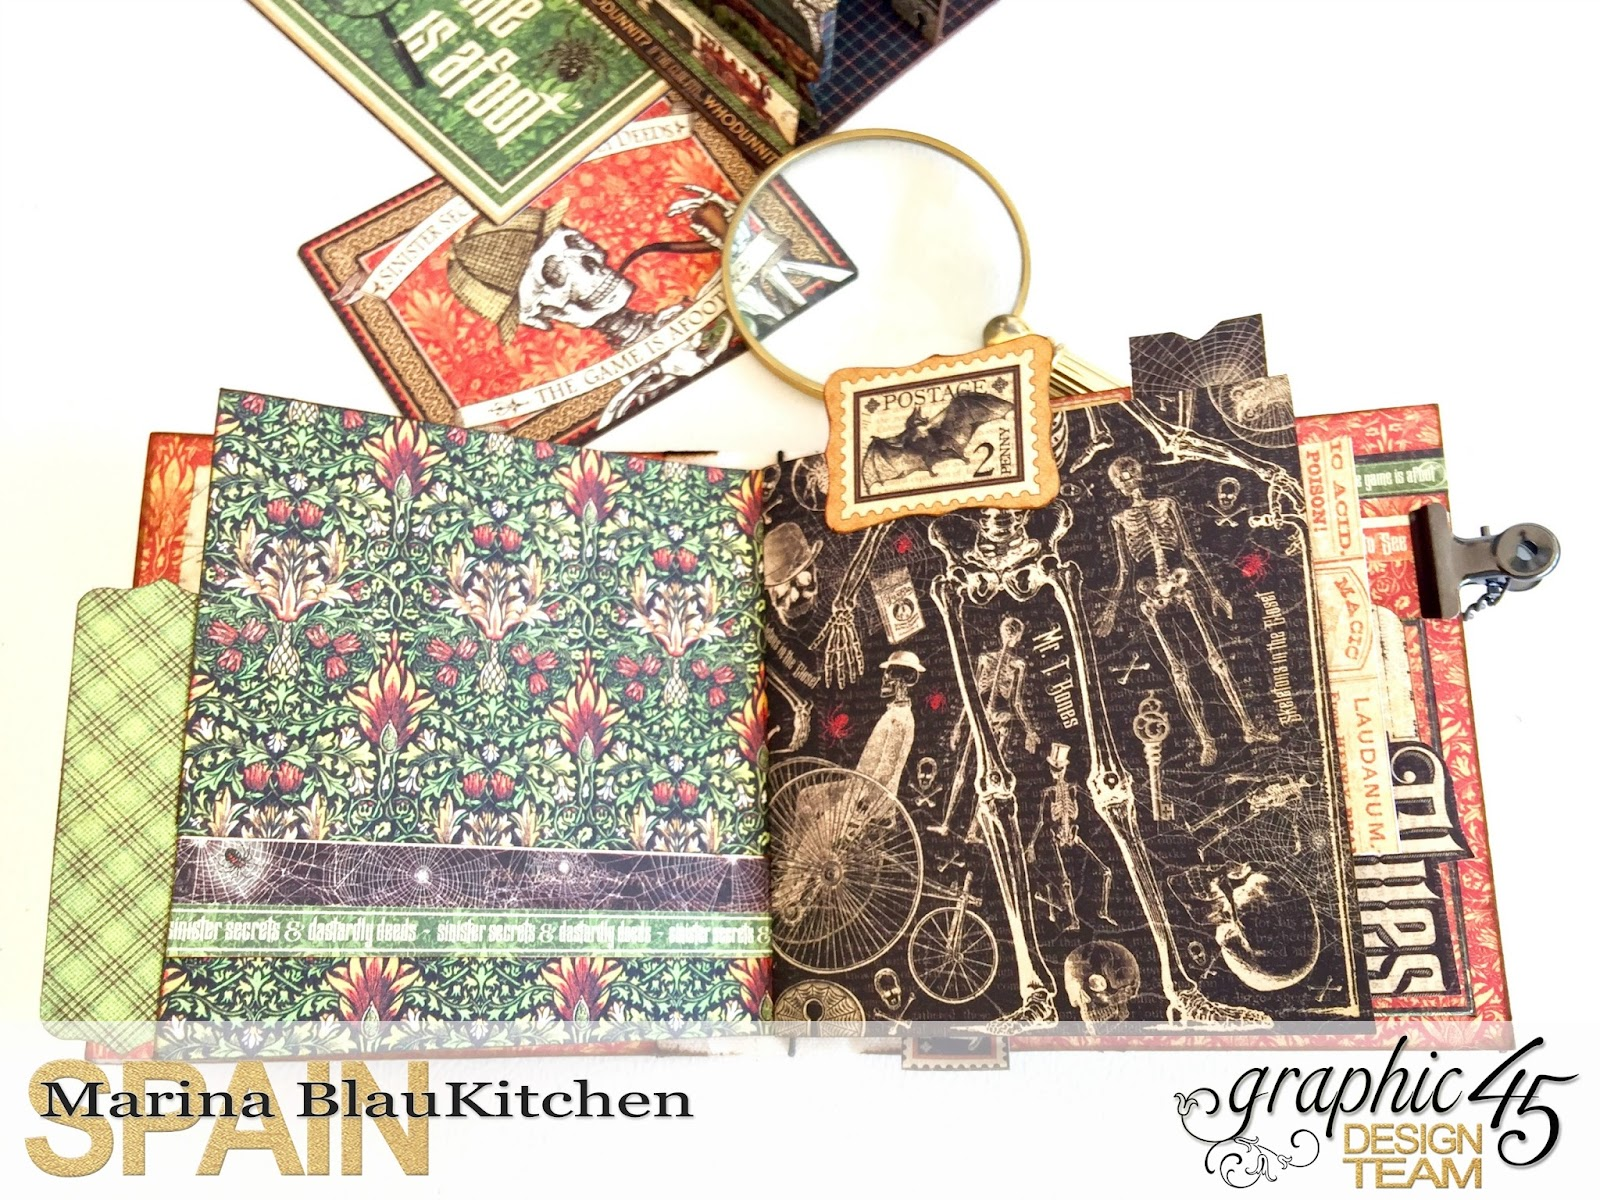 Stand and Mini Album Master Detective by Marina Blaukitchen Product by Graphic 45 photo 16.jpg